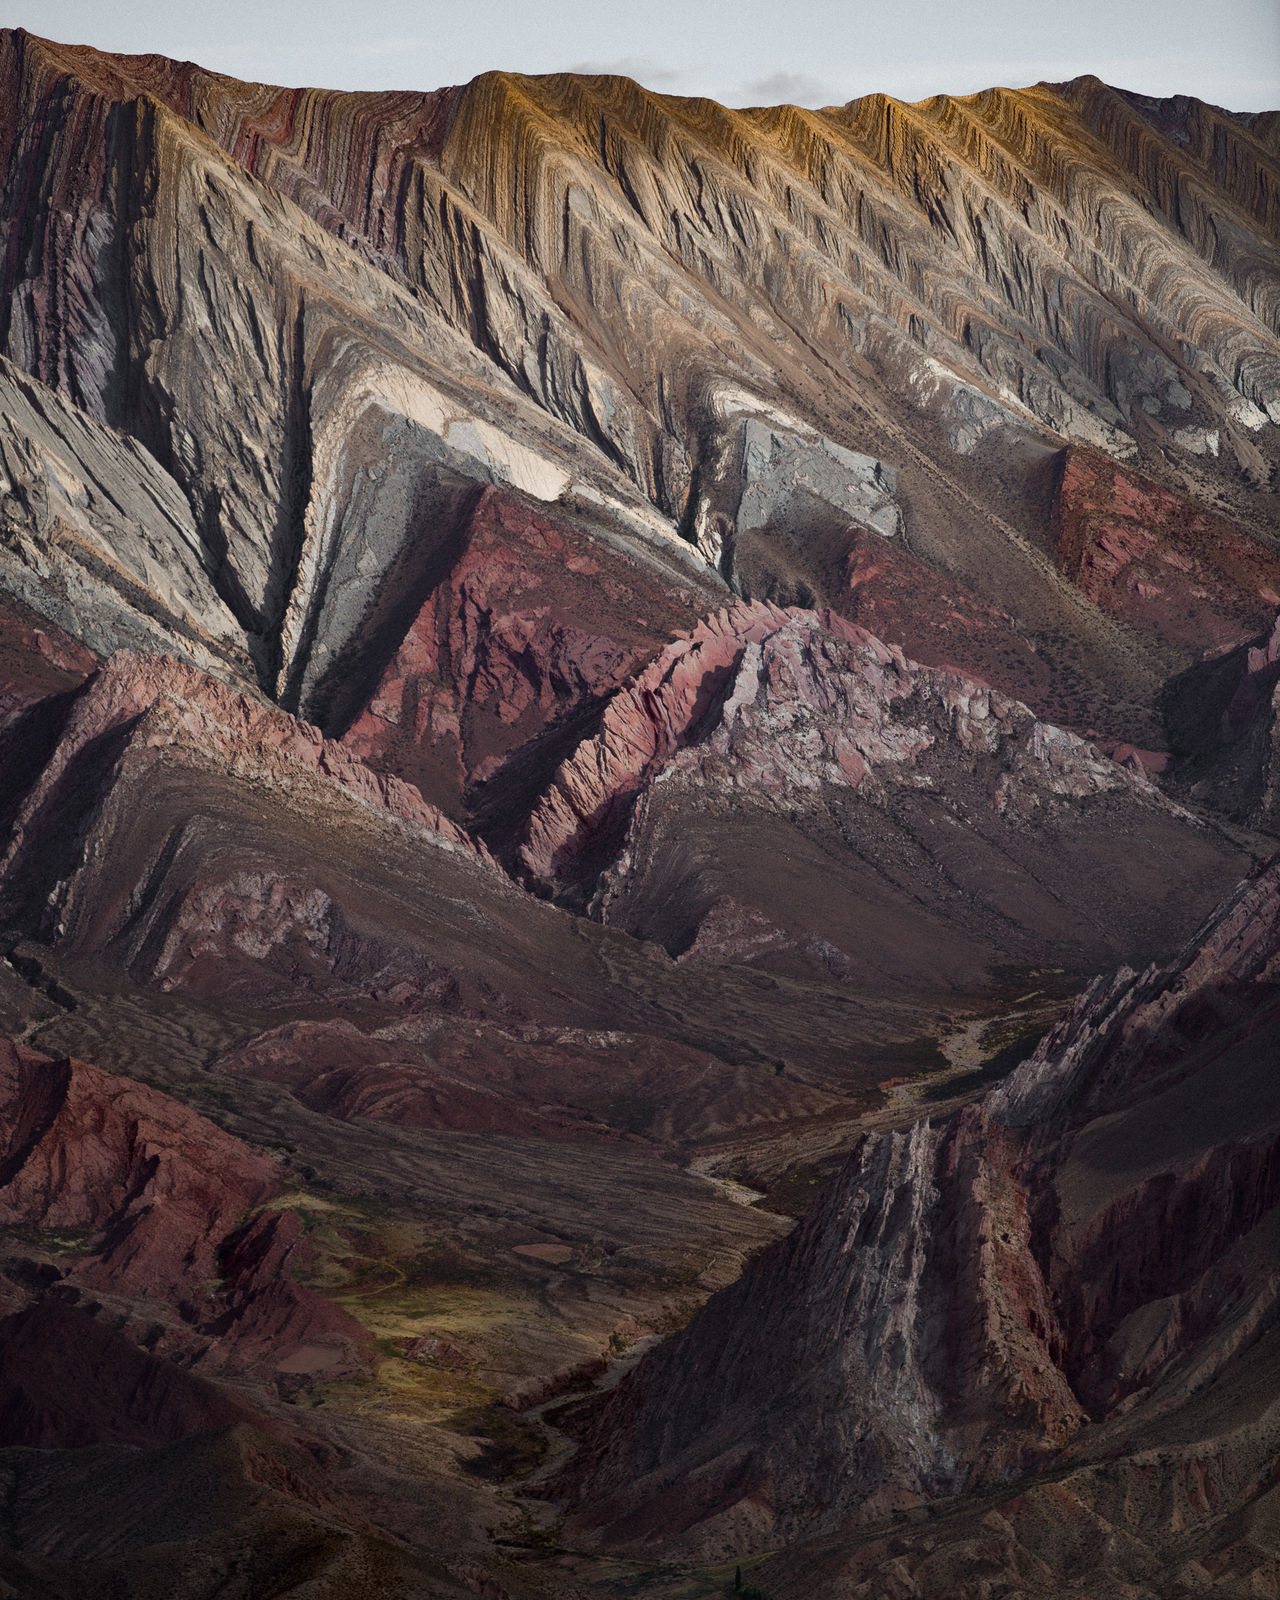 El Hornocal WeekOnEyeEm geology physical geography Textured rough mining outdoors no people Nature day landscape